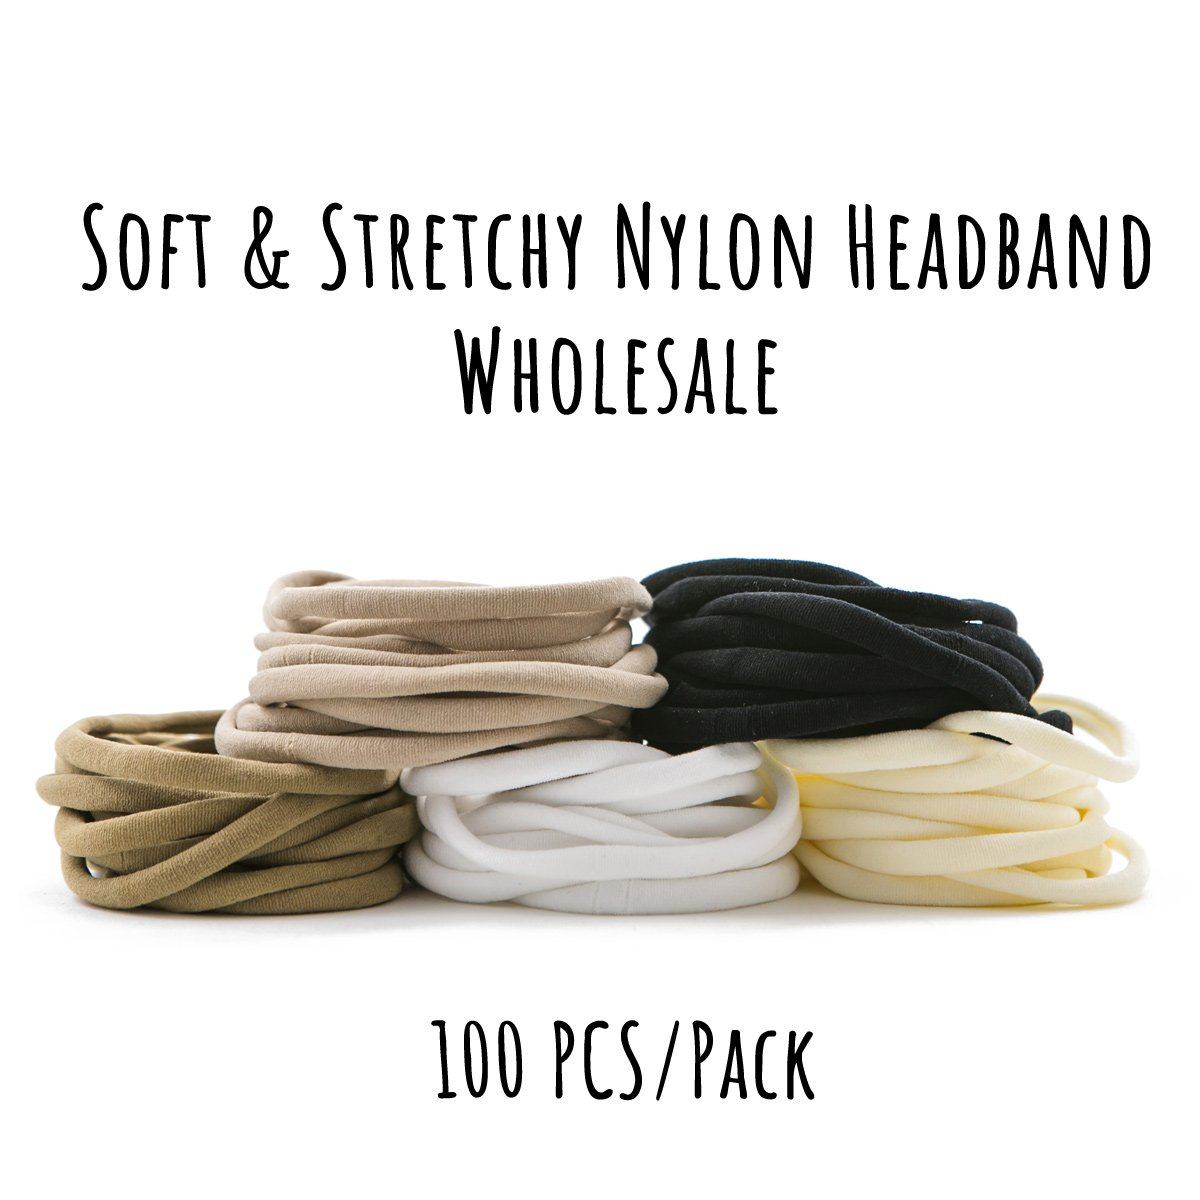 100pcs Nylon Headband - Fits all Newborns, Babies, Toddlers and Children Lovable Ponytail